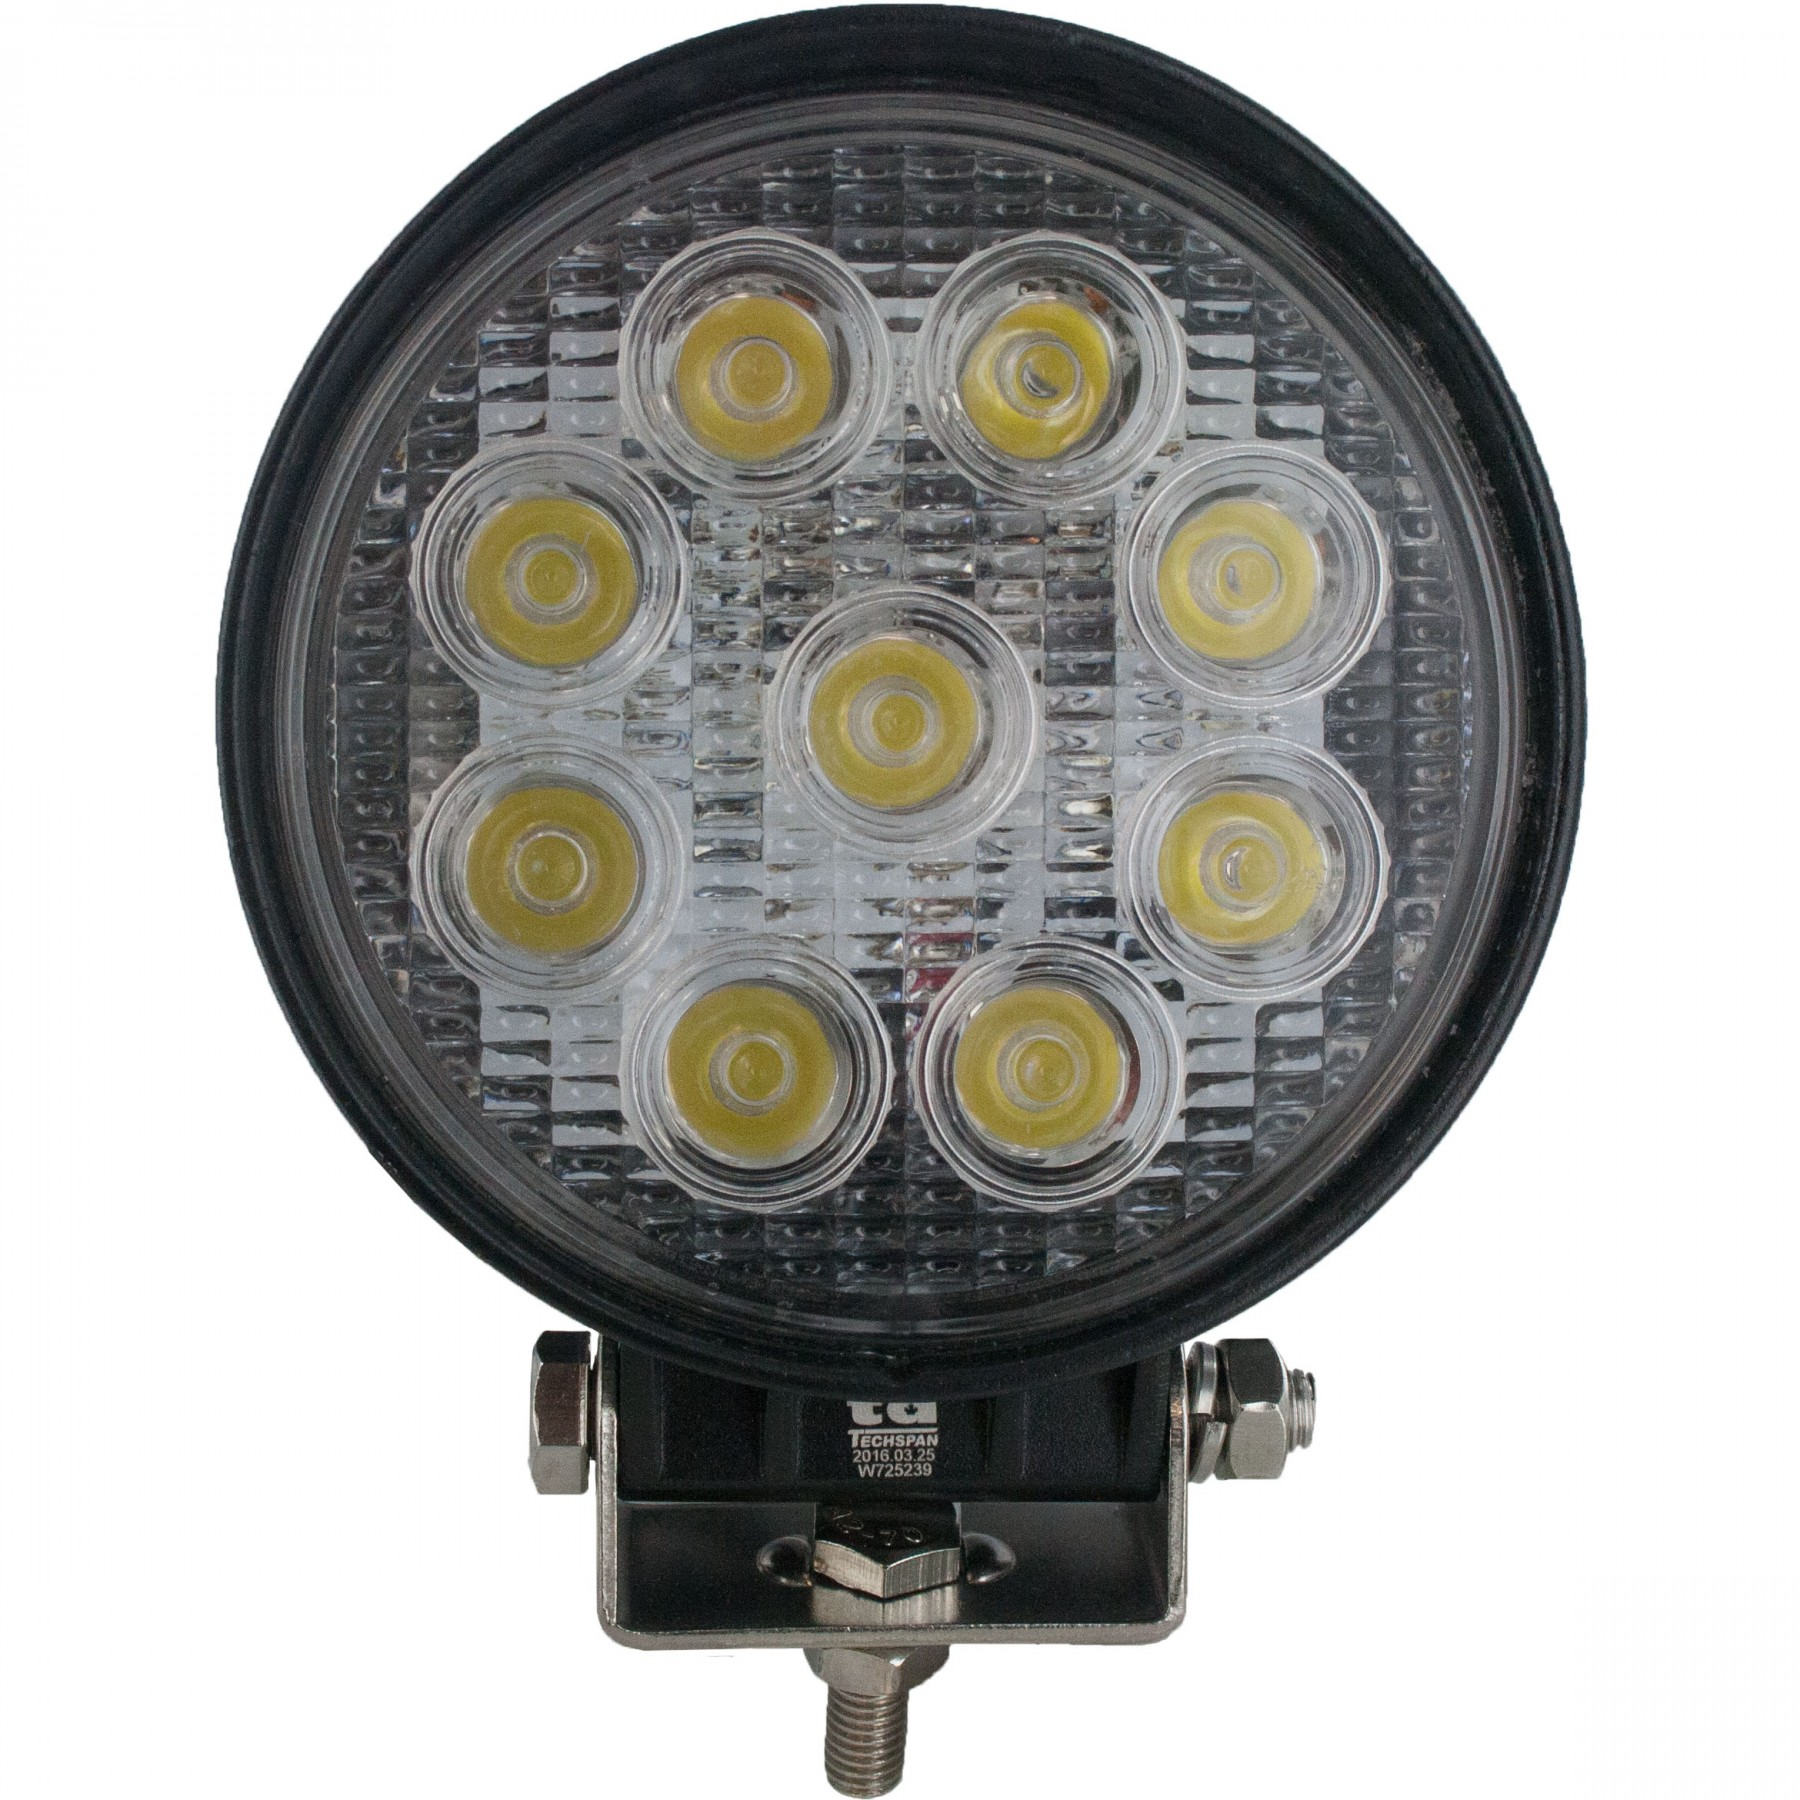 Round Tractor Utility Lamp LED 1710 Lumens 30 Degree 27